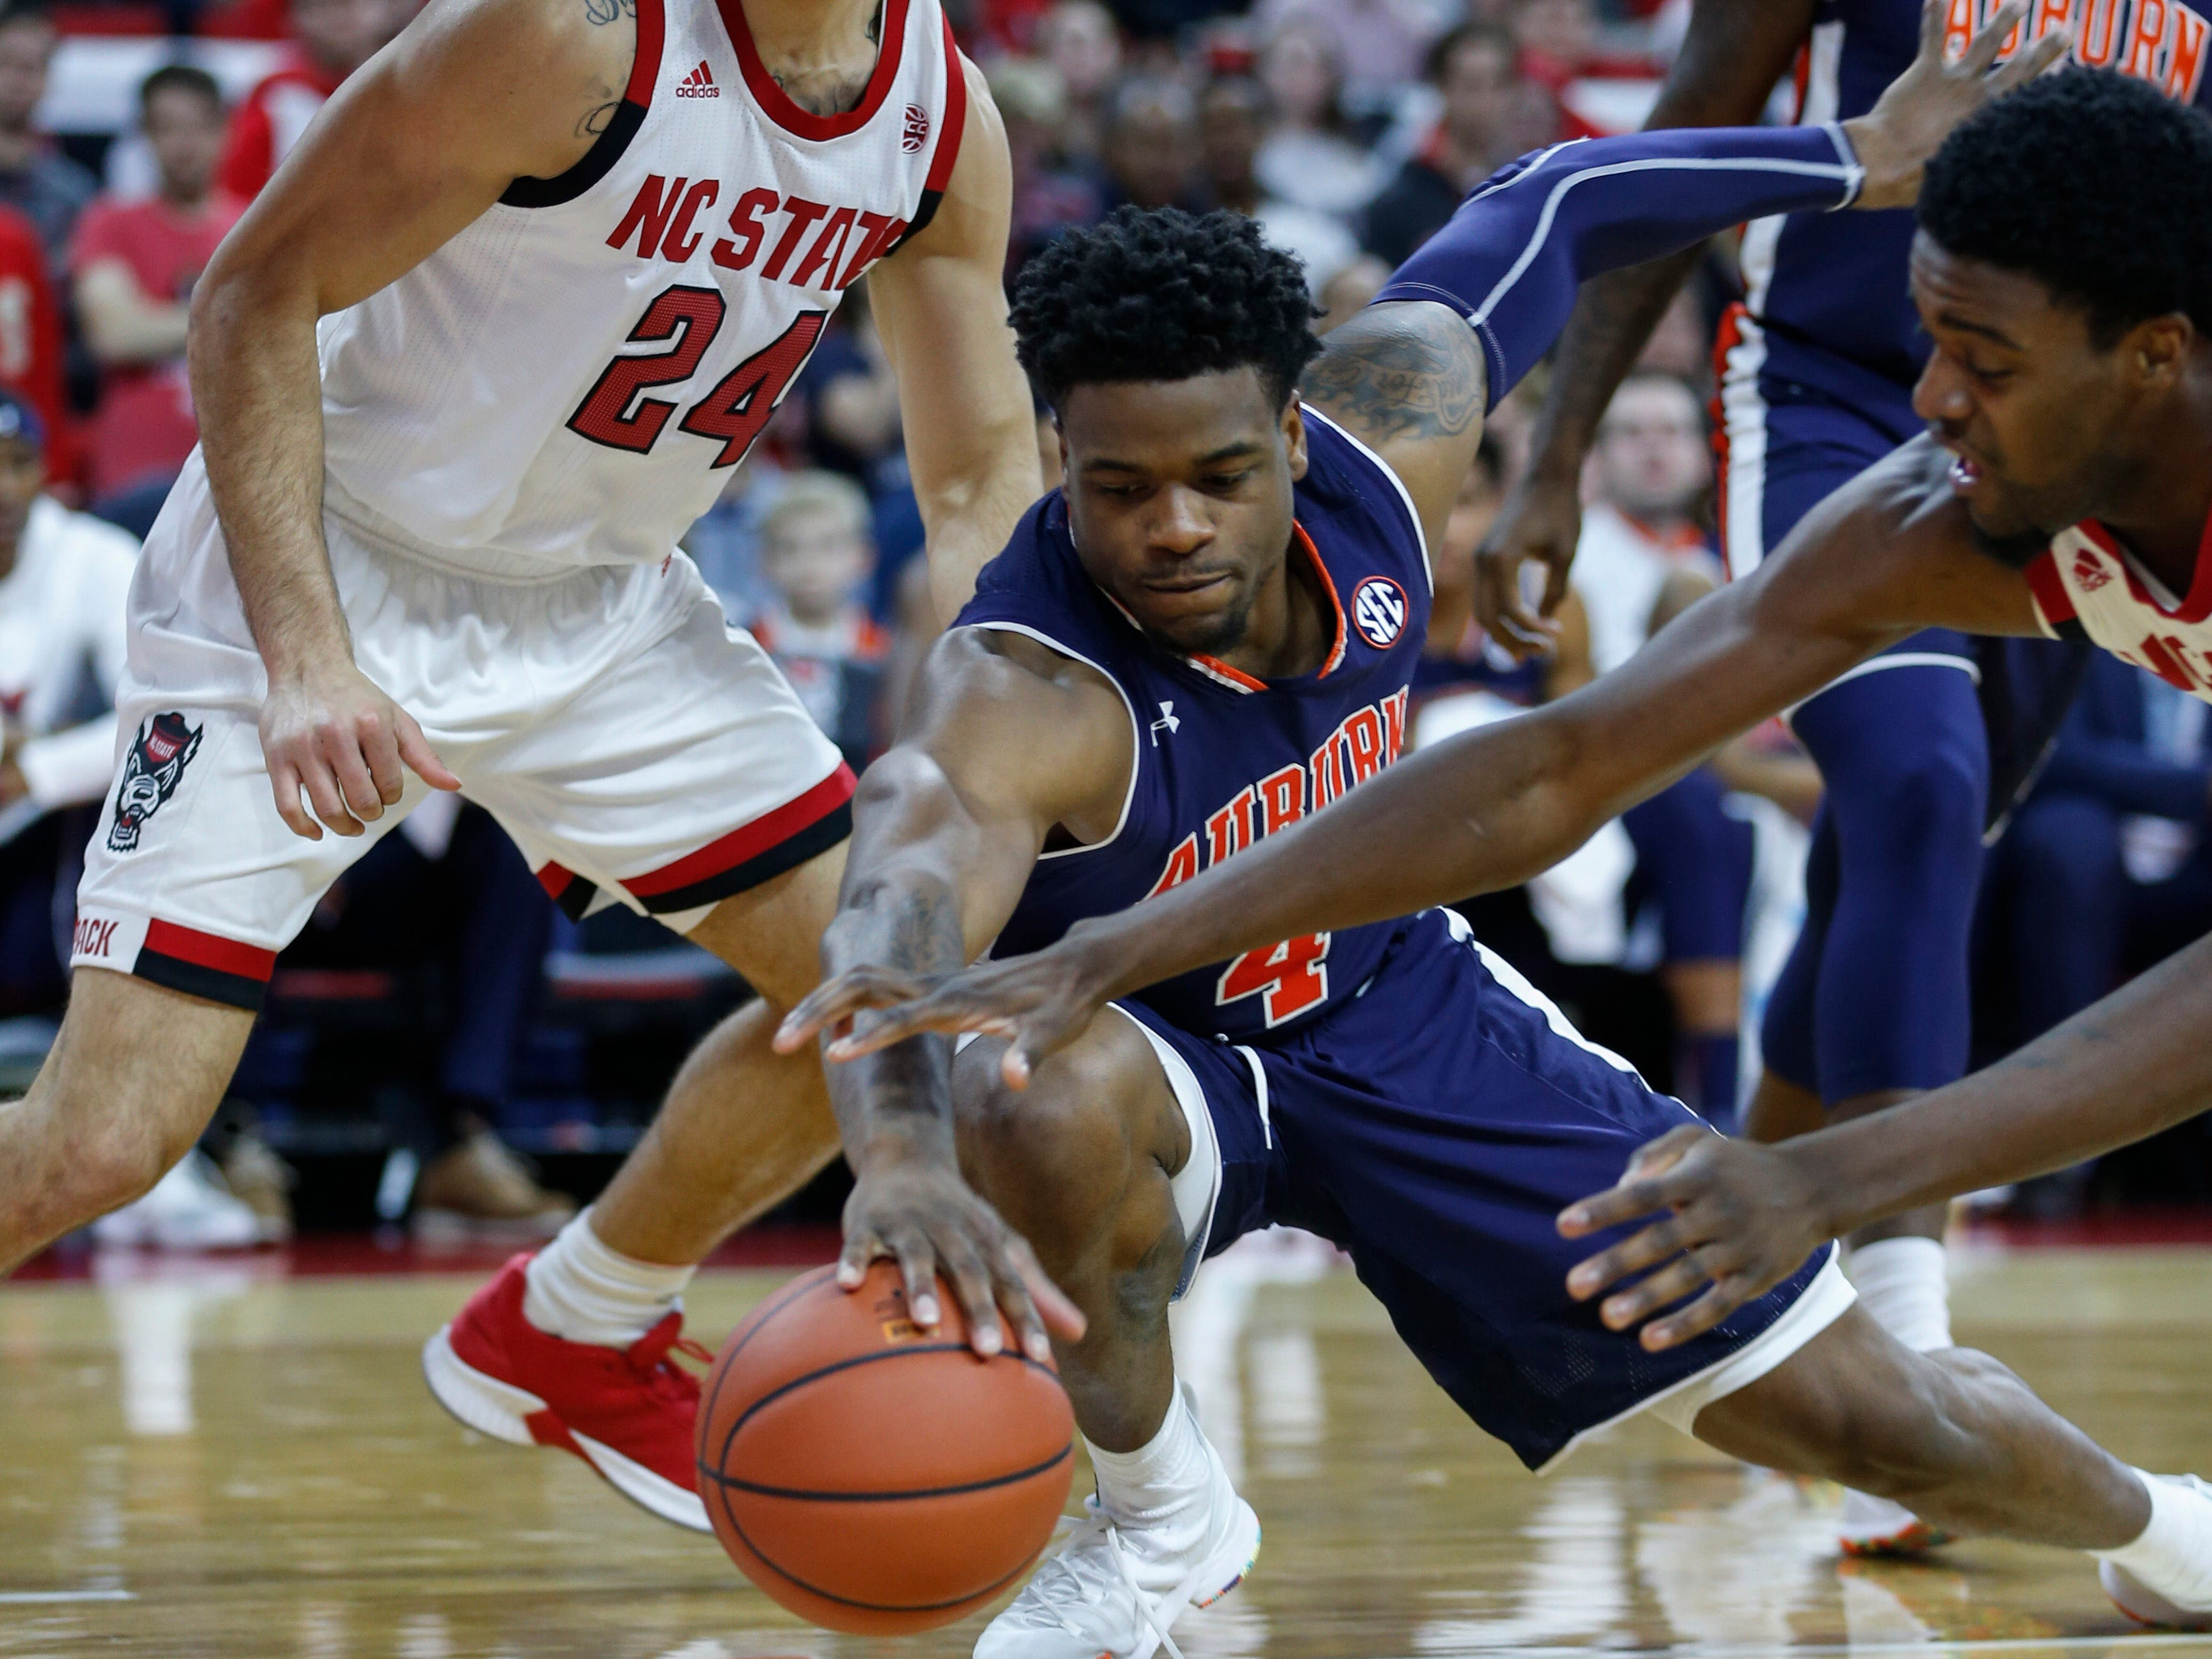 Auburn guard Malik Dunbar (4) battles NC State forward DJ Funderburk (right) for a loose ball as guard Devon Daniels (24) looks on in the first half at PNC Arena on Dec. 19, 2018, in Raleigh, NC.